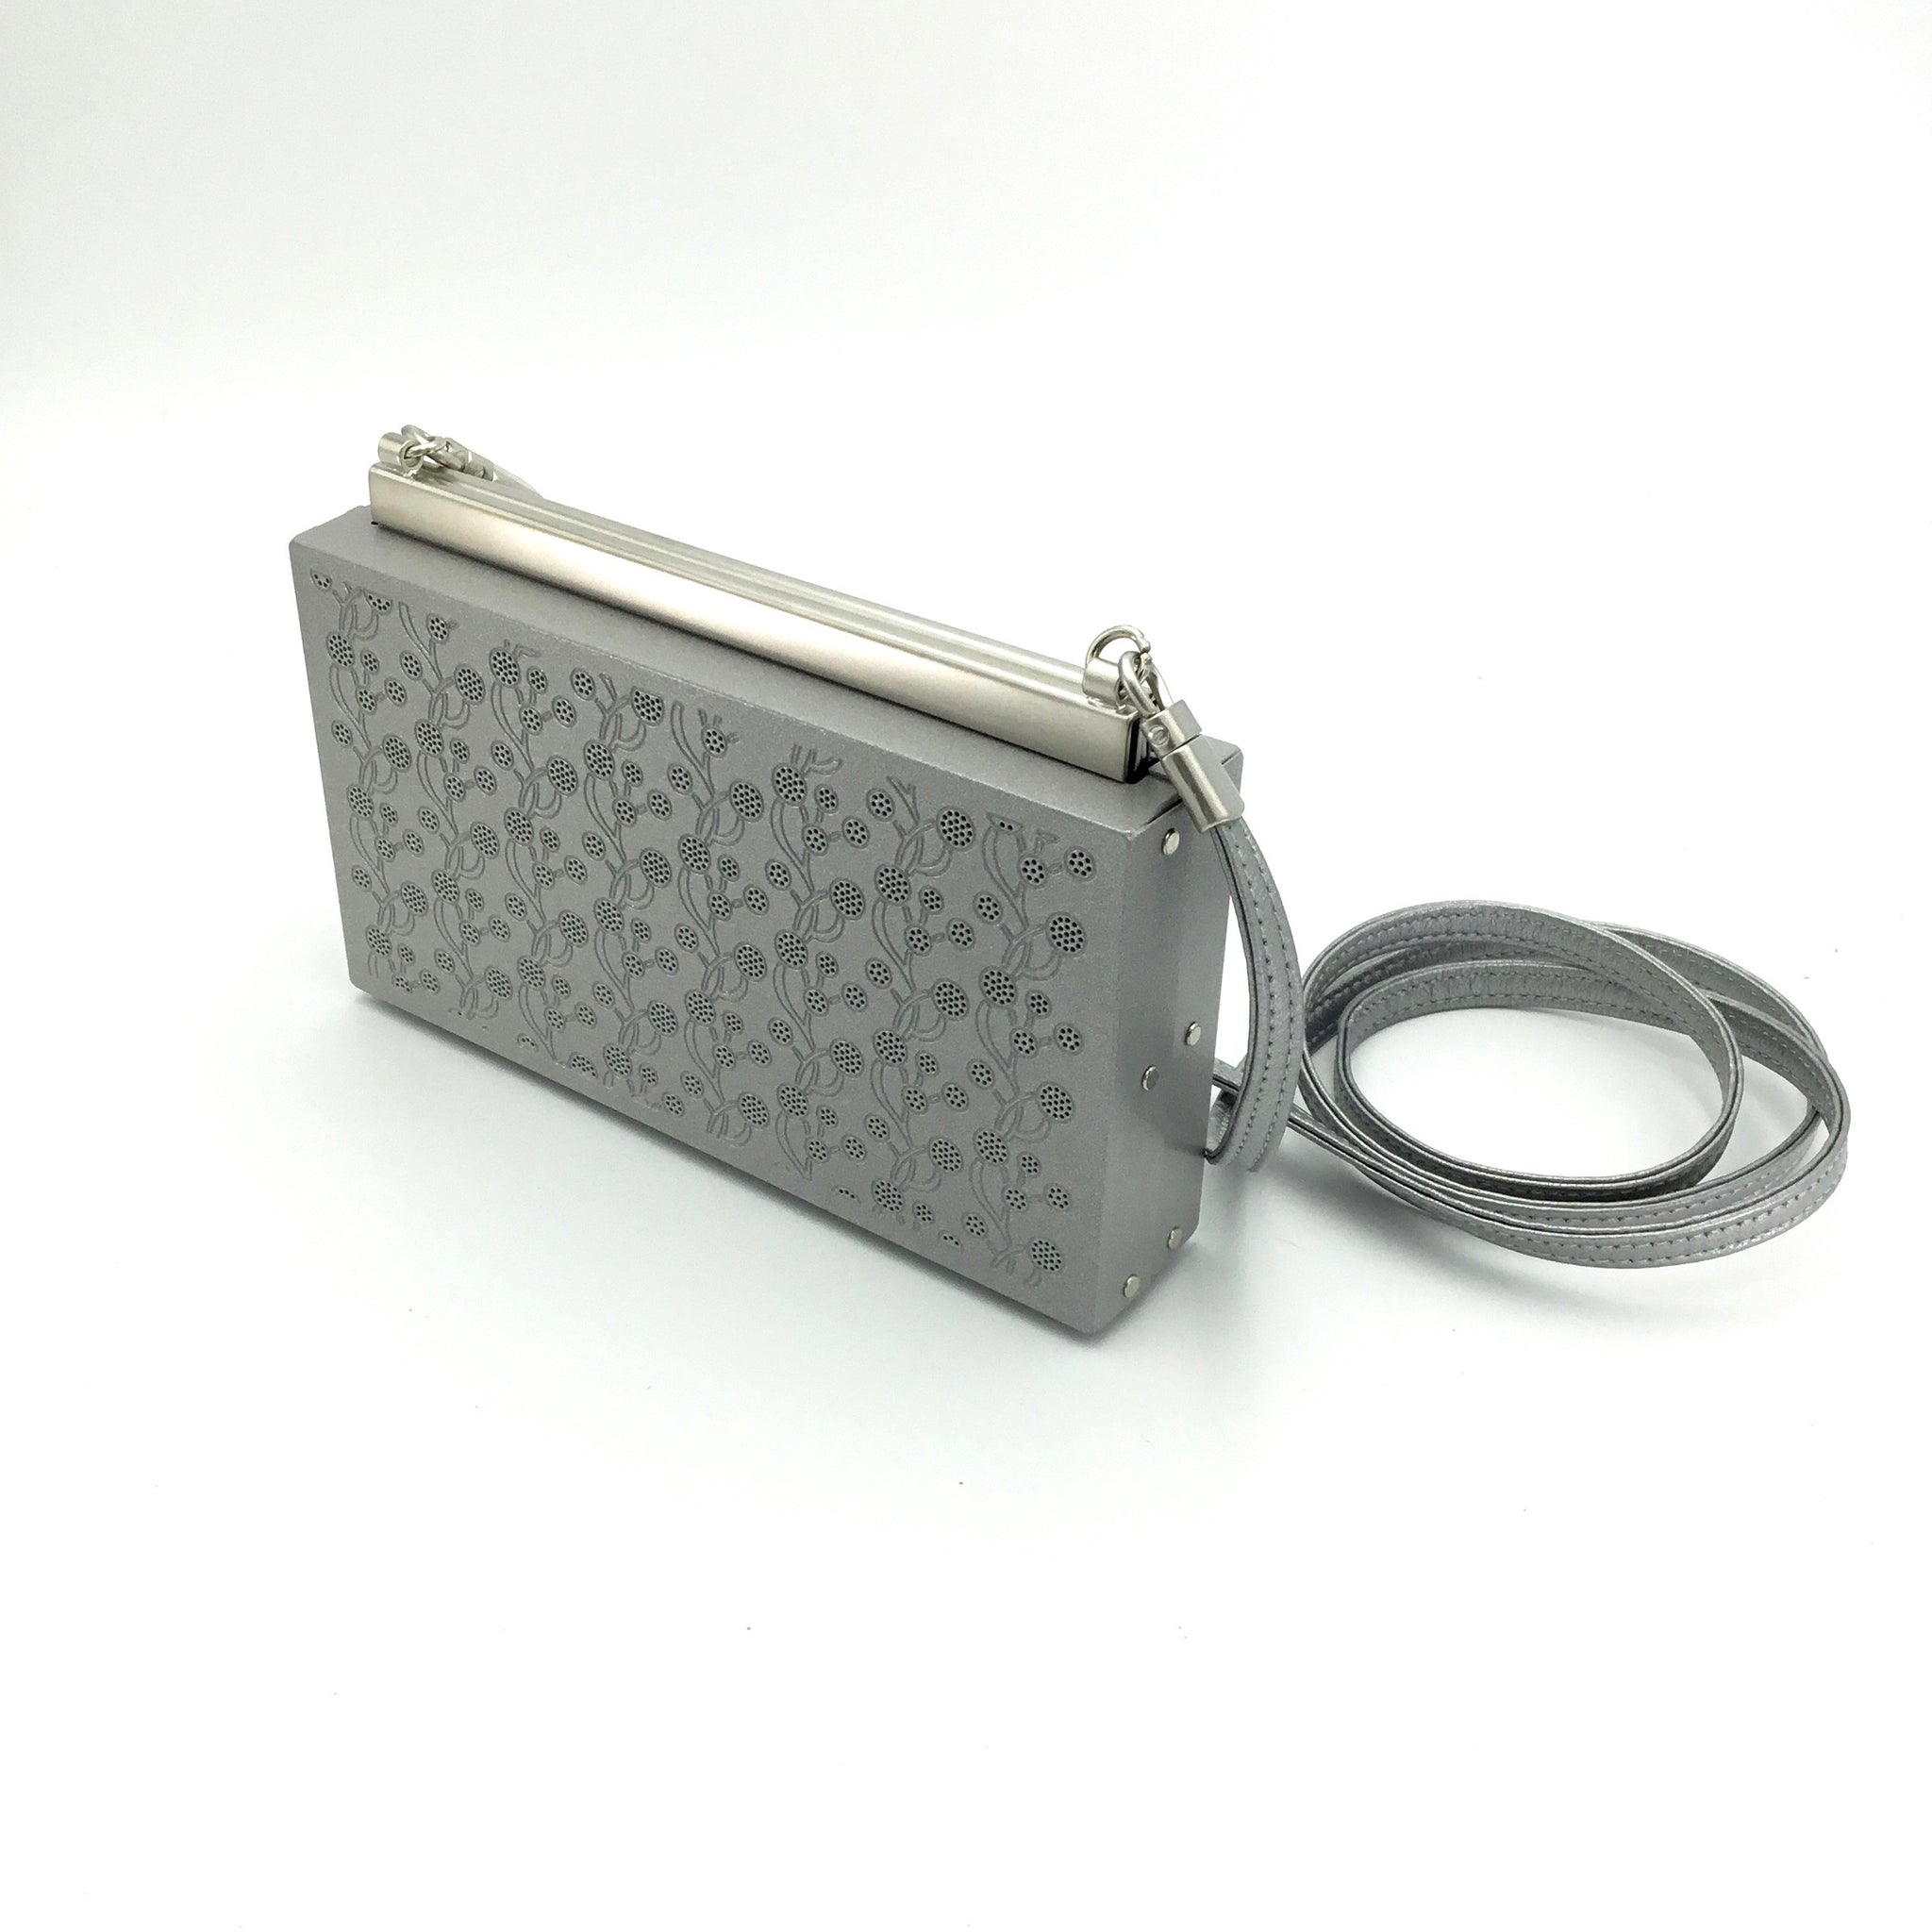 Wendy Stevens Vine Stainless Steel Handbag